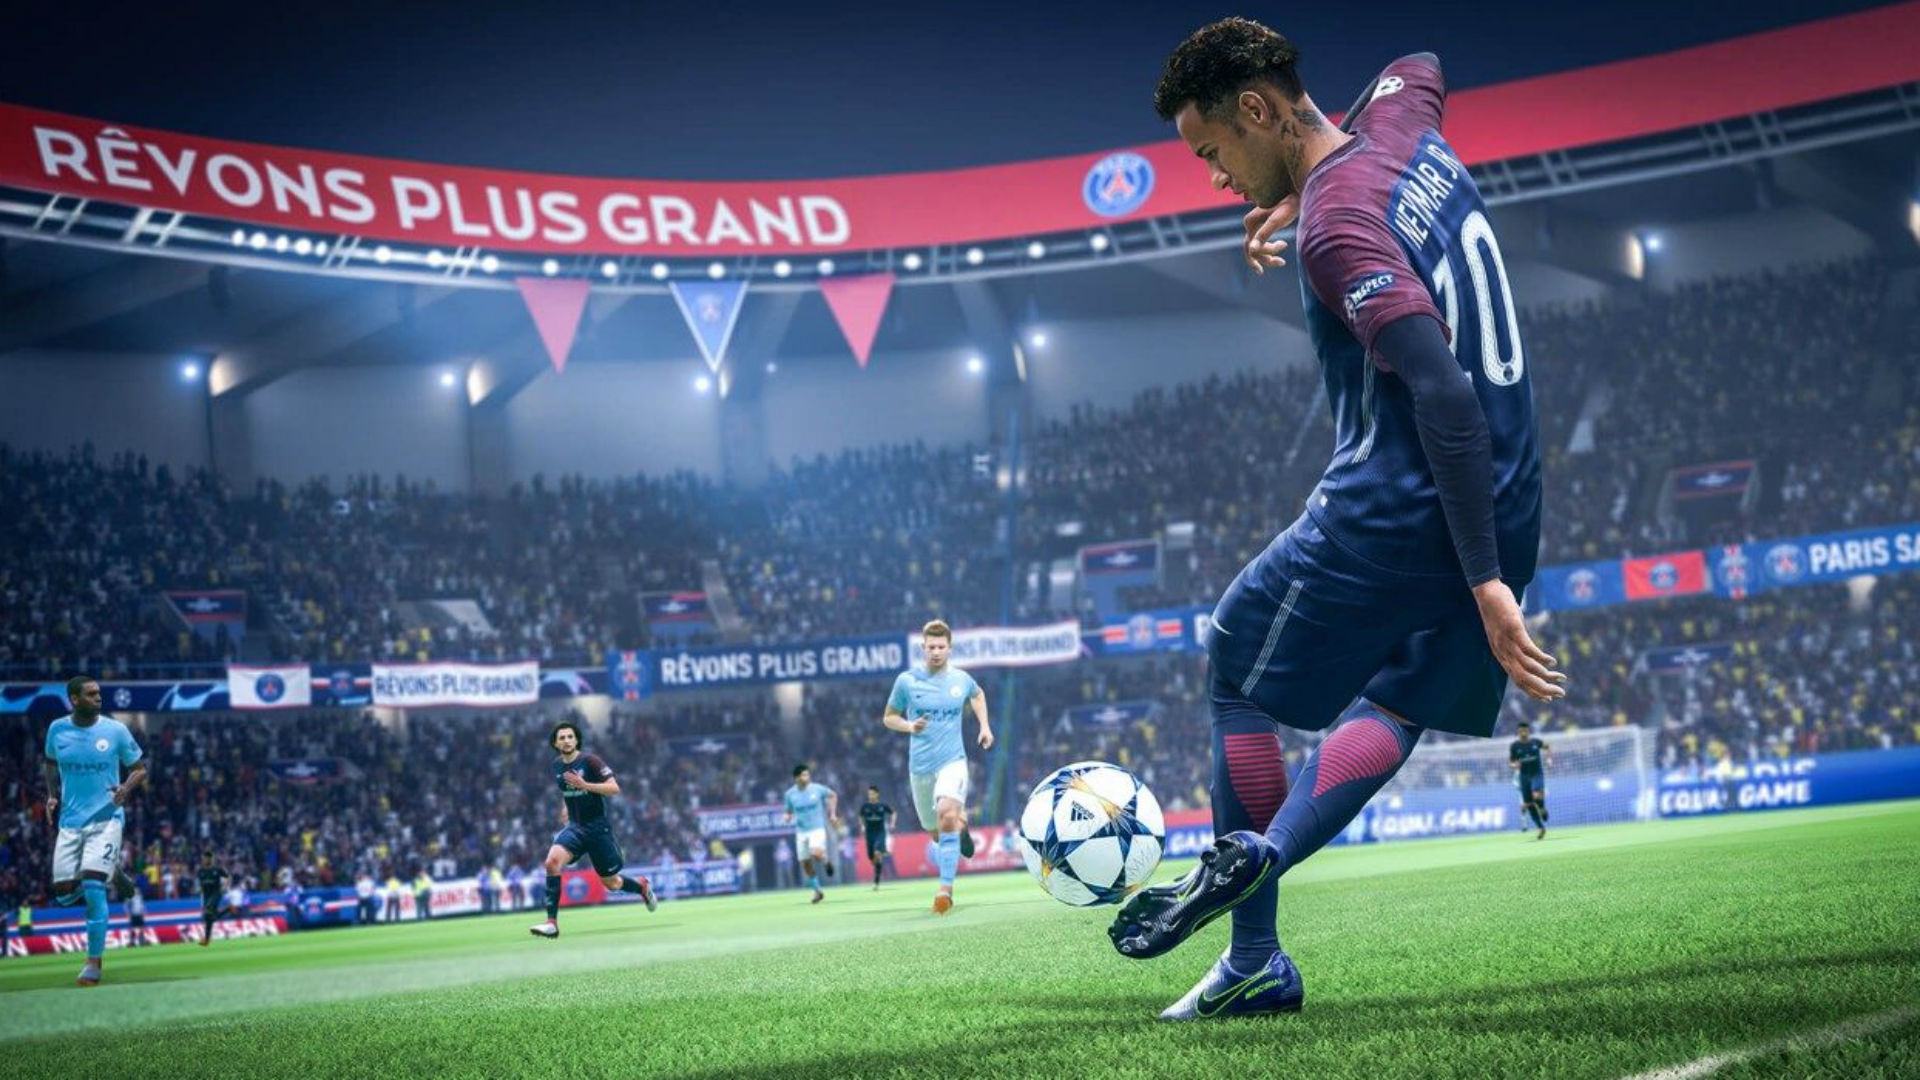 FIFA 19: How to get the brand new Xbox One or PS4 game for